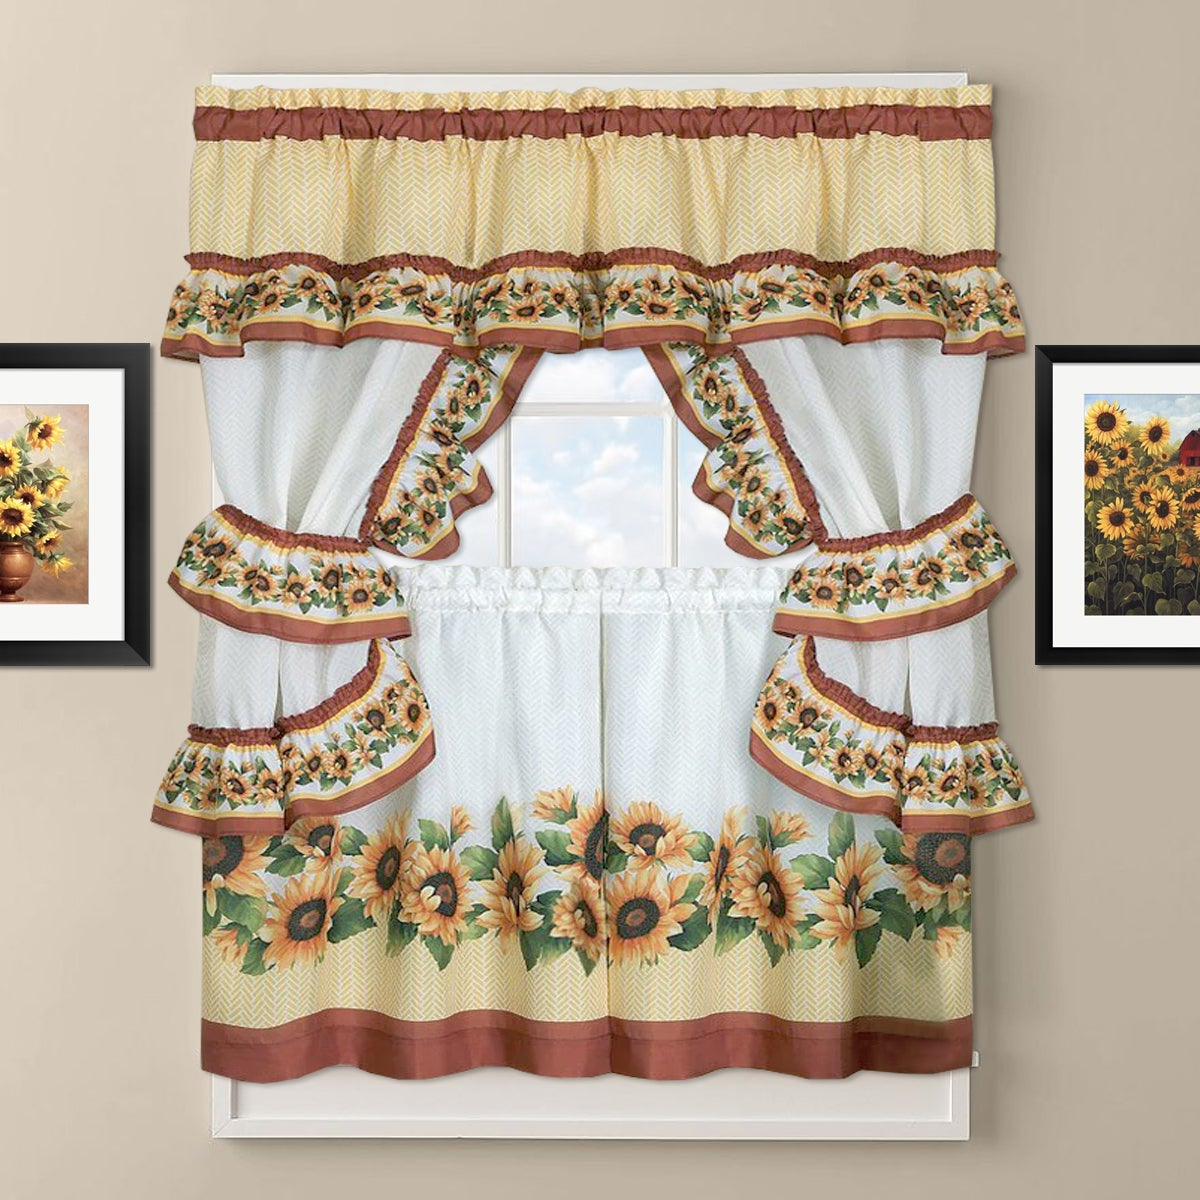 Sunflower Cottage Kitchen Curtain Tier And Valance Set Intended For Widely Used Window Curtains Sets With Colorful Marketplace Vegetable And Sunflower Print (View 8 of 20)